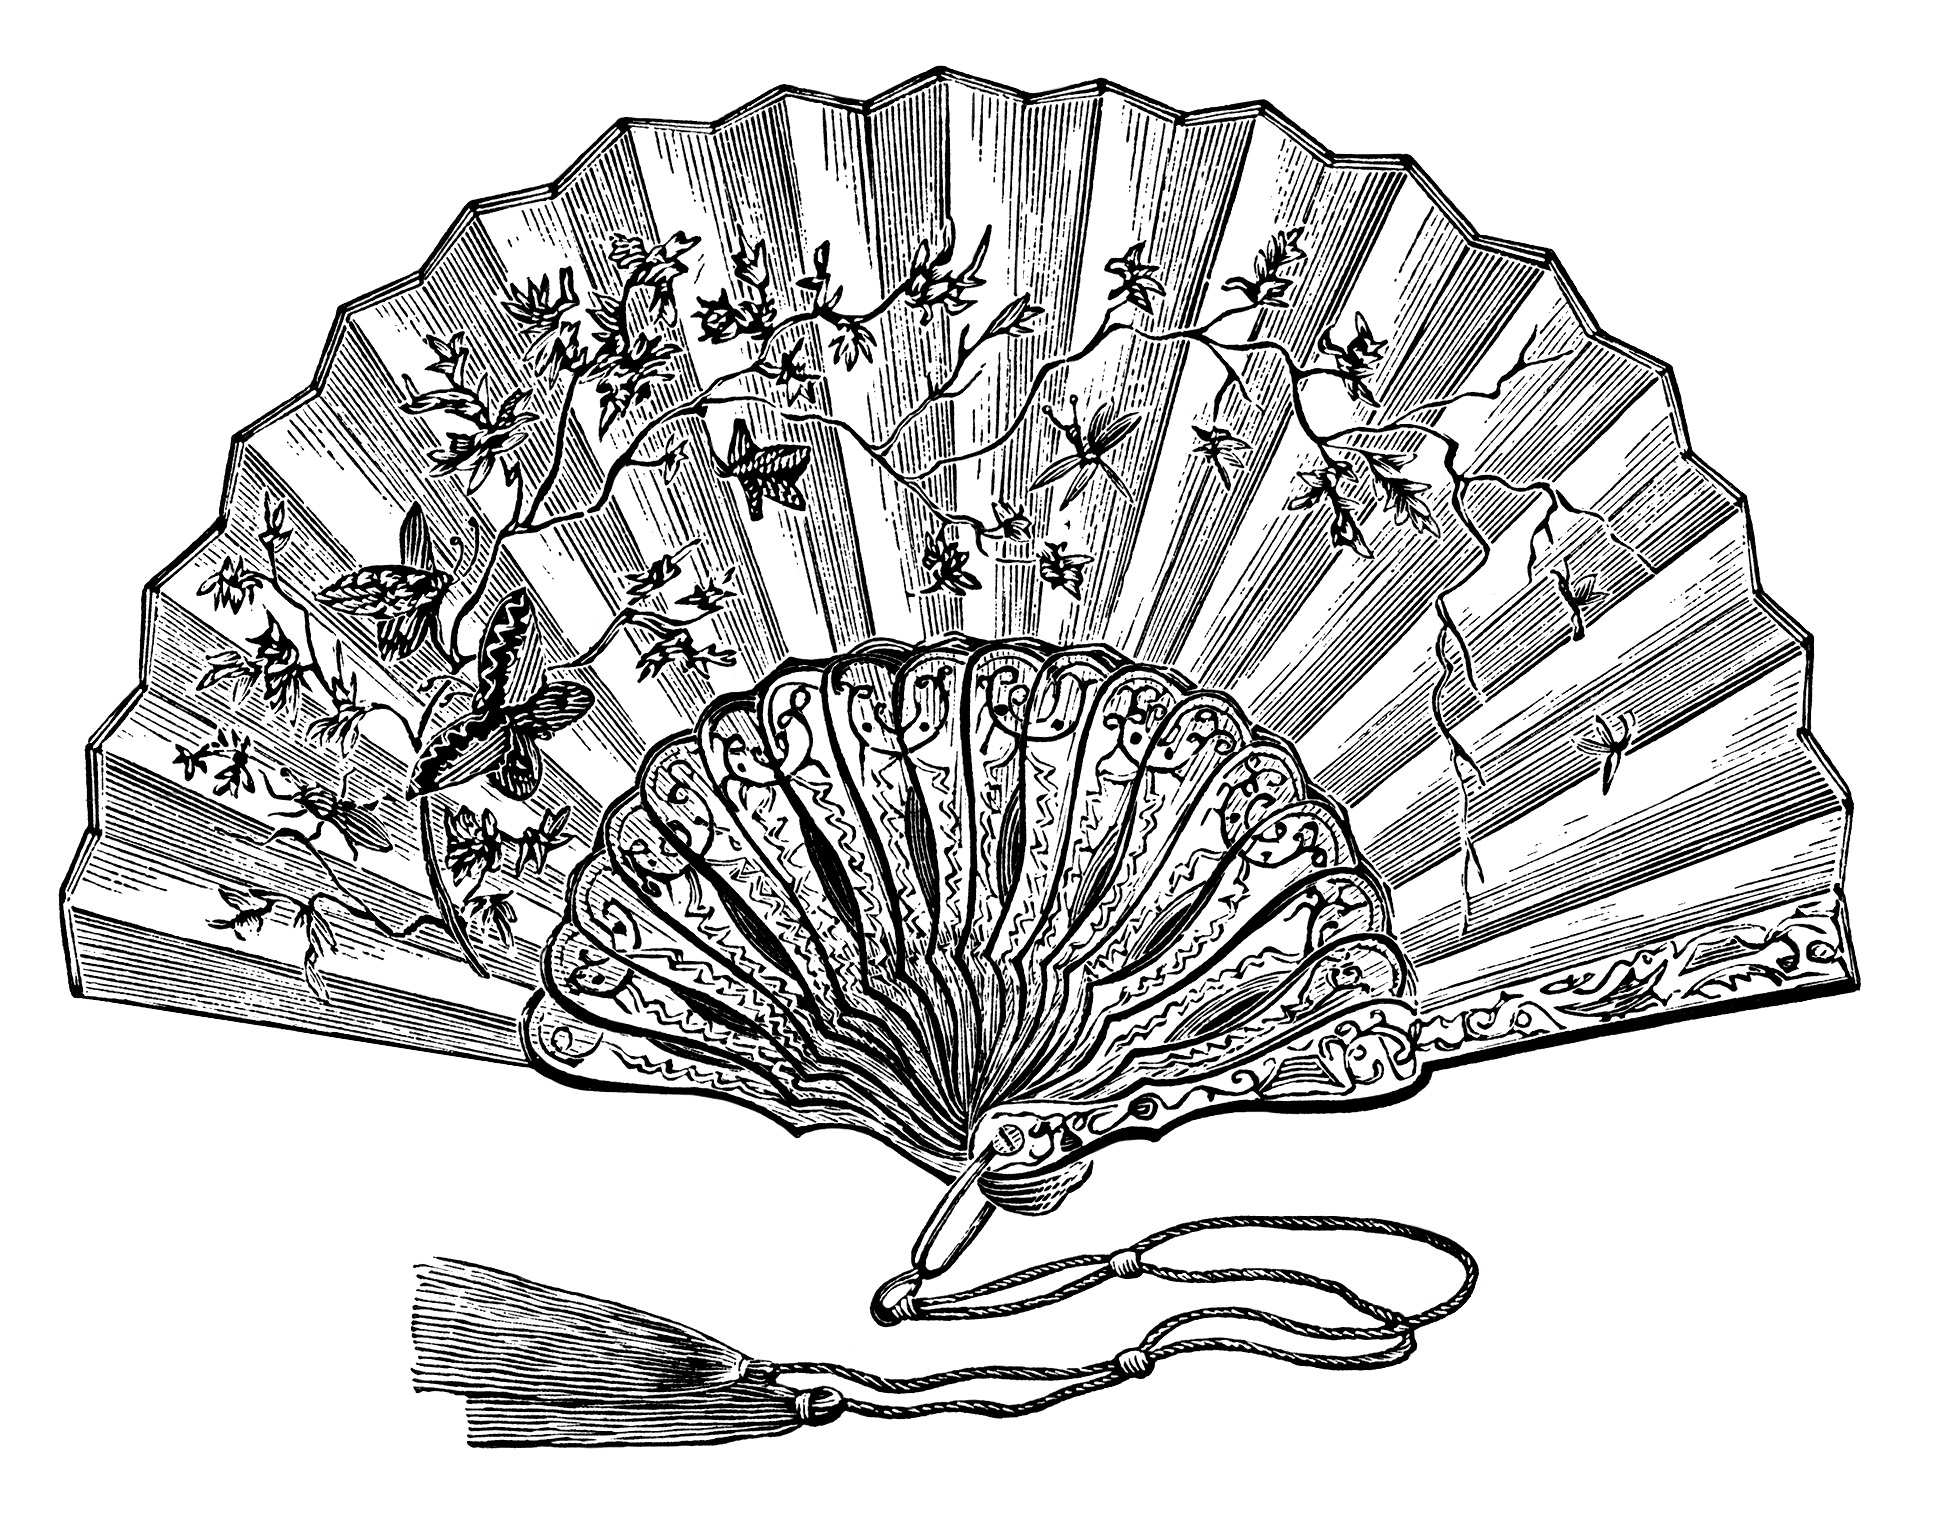 Victorian ladies fan, vintage ladies fan clipart, black and white graphics free, antique hand held fan, fan illustration for woman